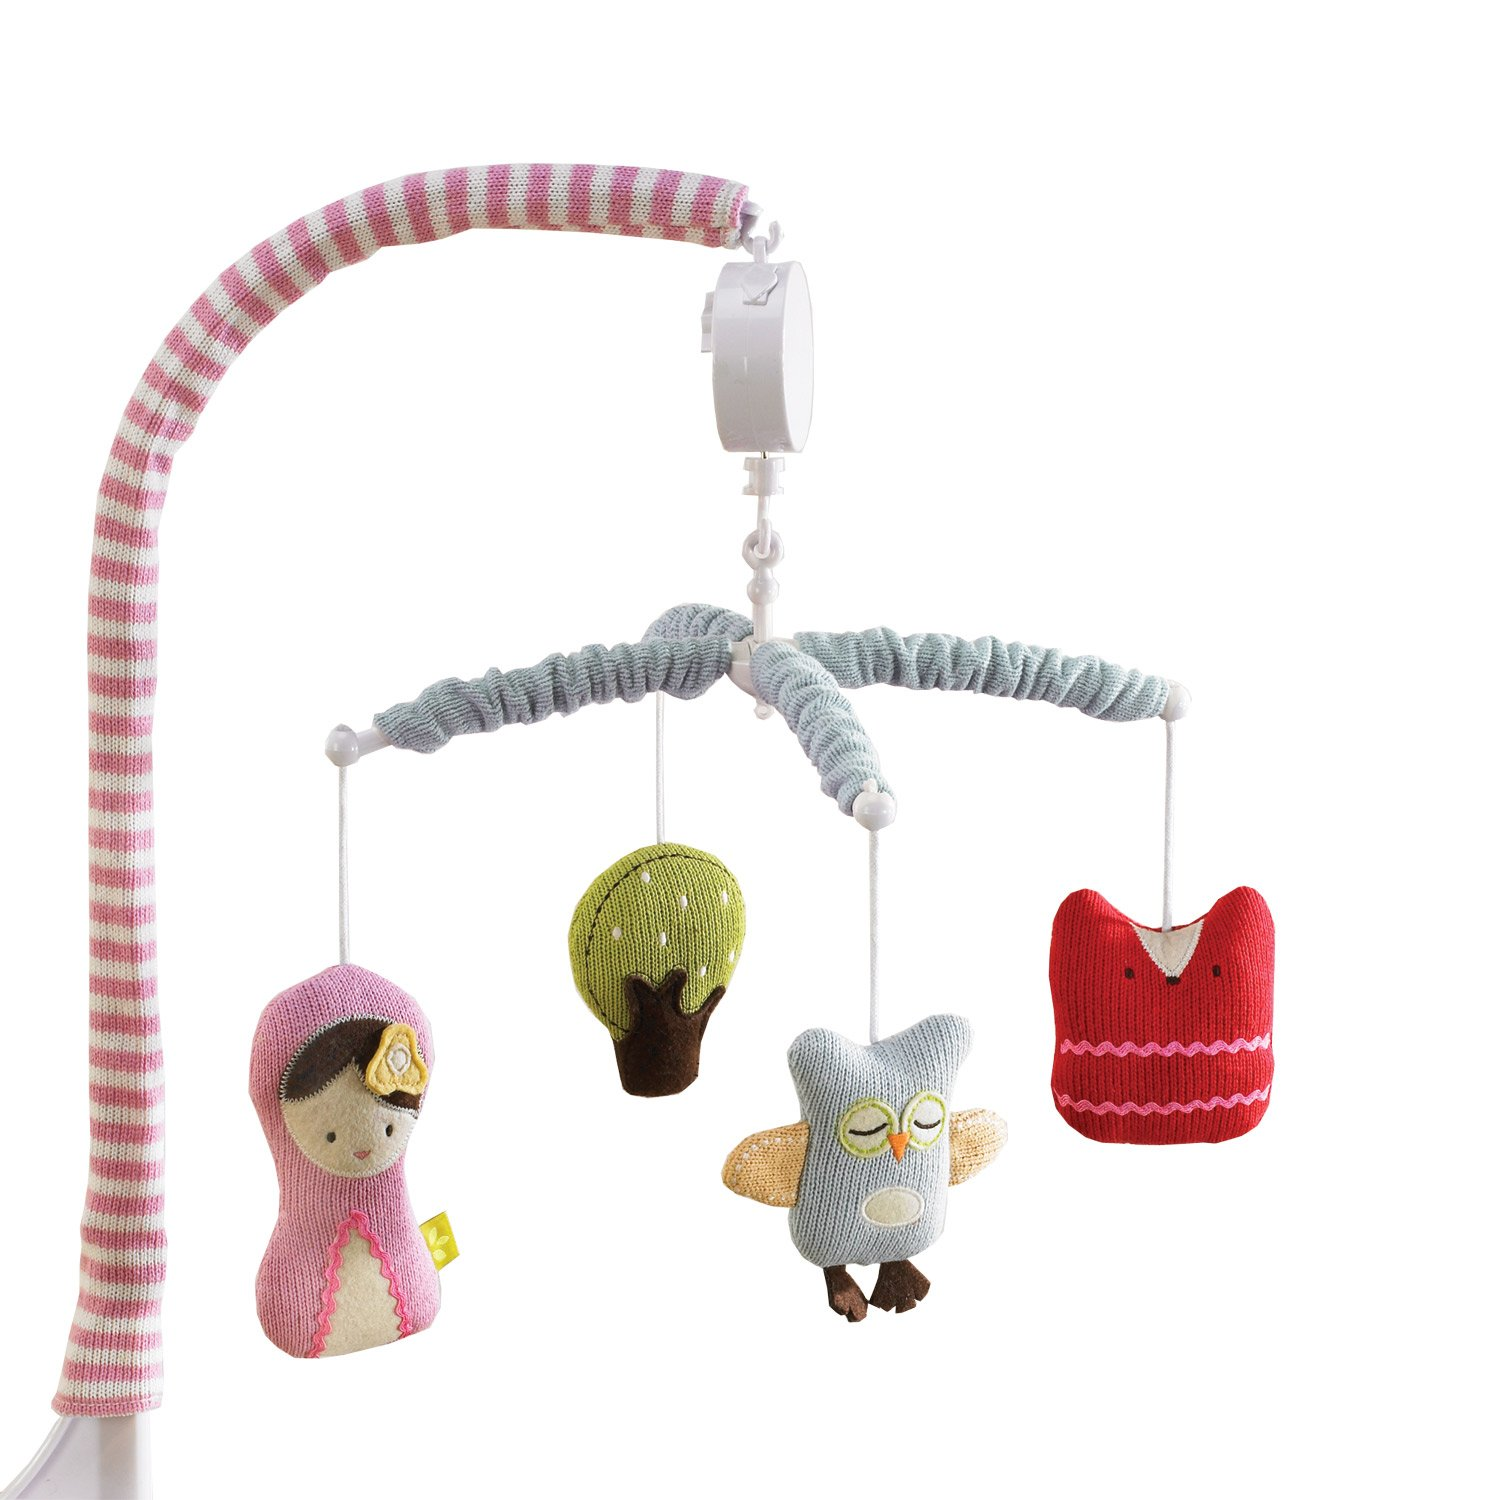 Good Amazon.com : Lolli Living Musical Mobile   Scarlet   Sturdy Design Is Easy  To Install On Babyu0027S Crib, Features Plush Animals And Wind Up Music Box  That ...